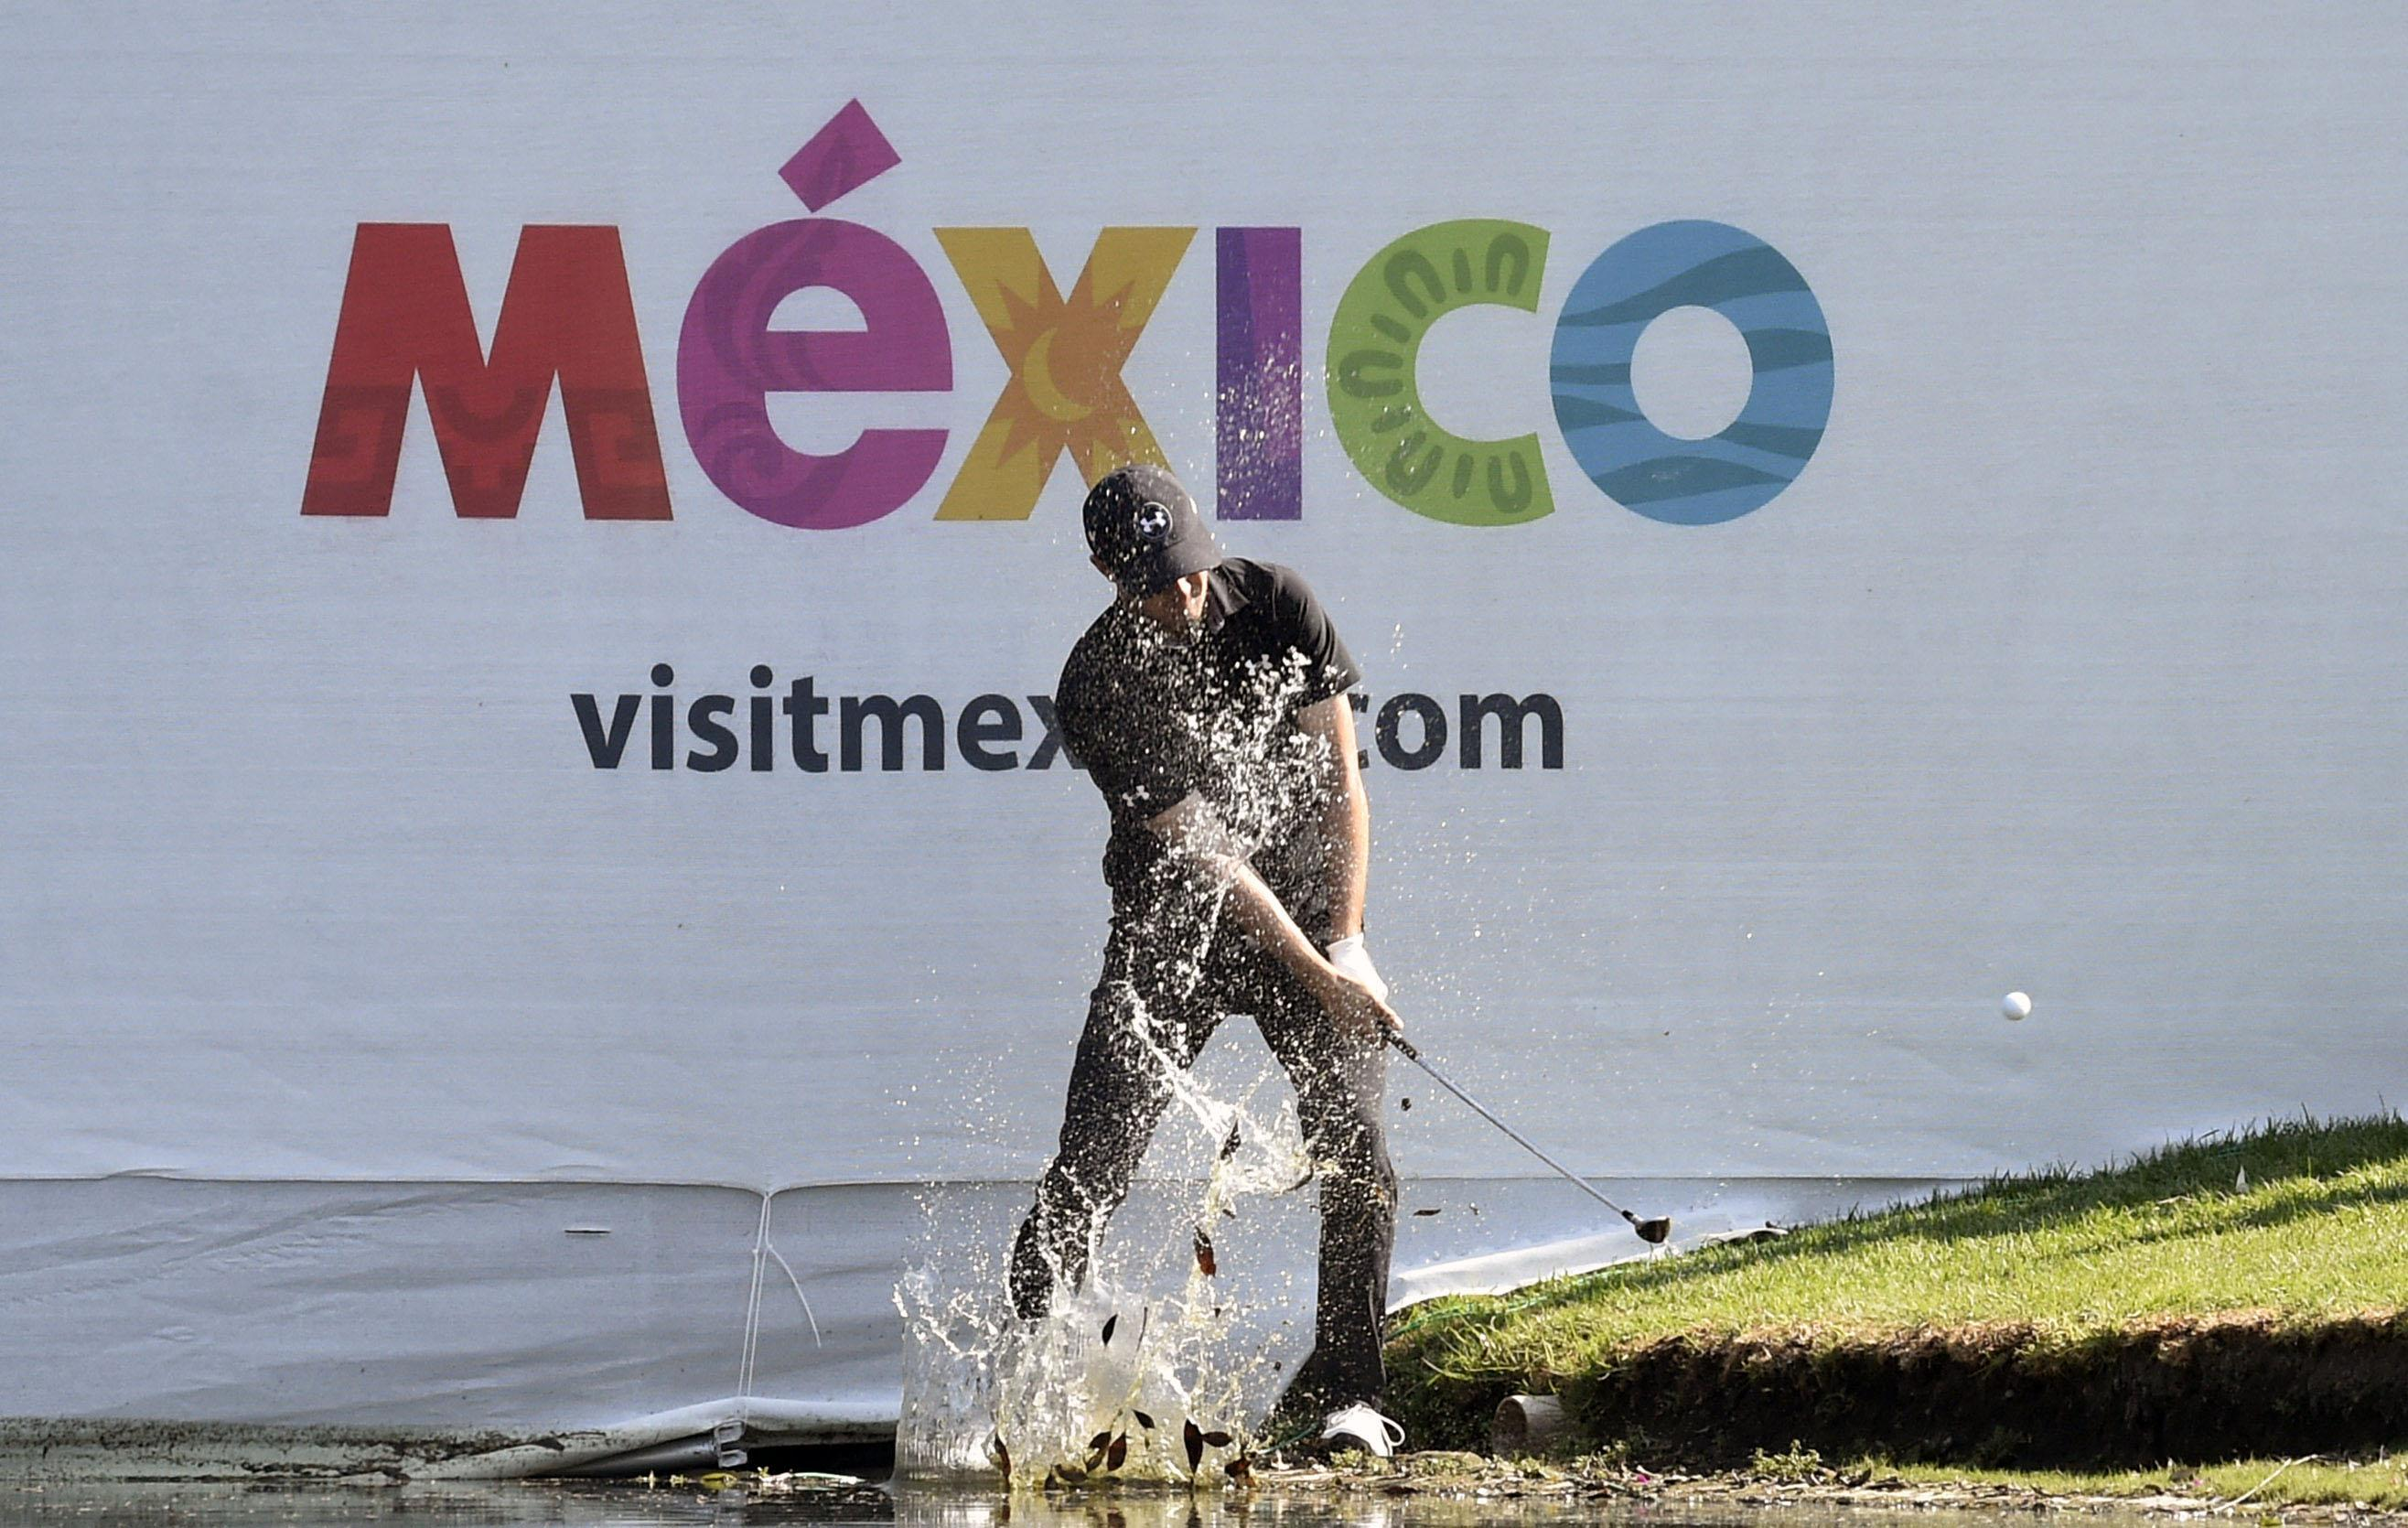 Jordan Spieth plays out of the water in Mexico